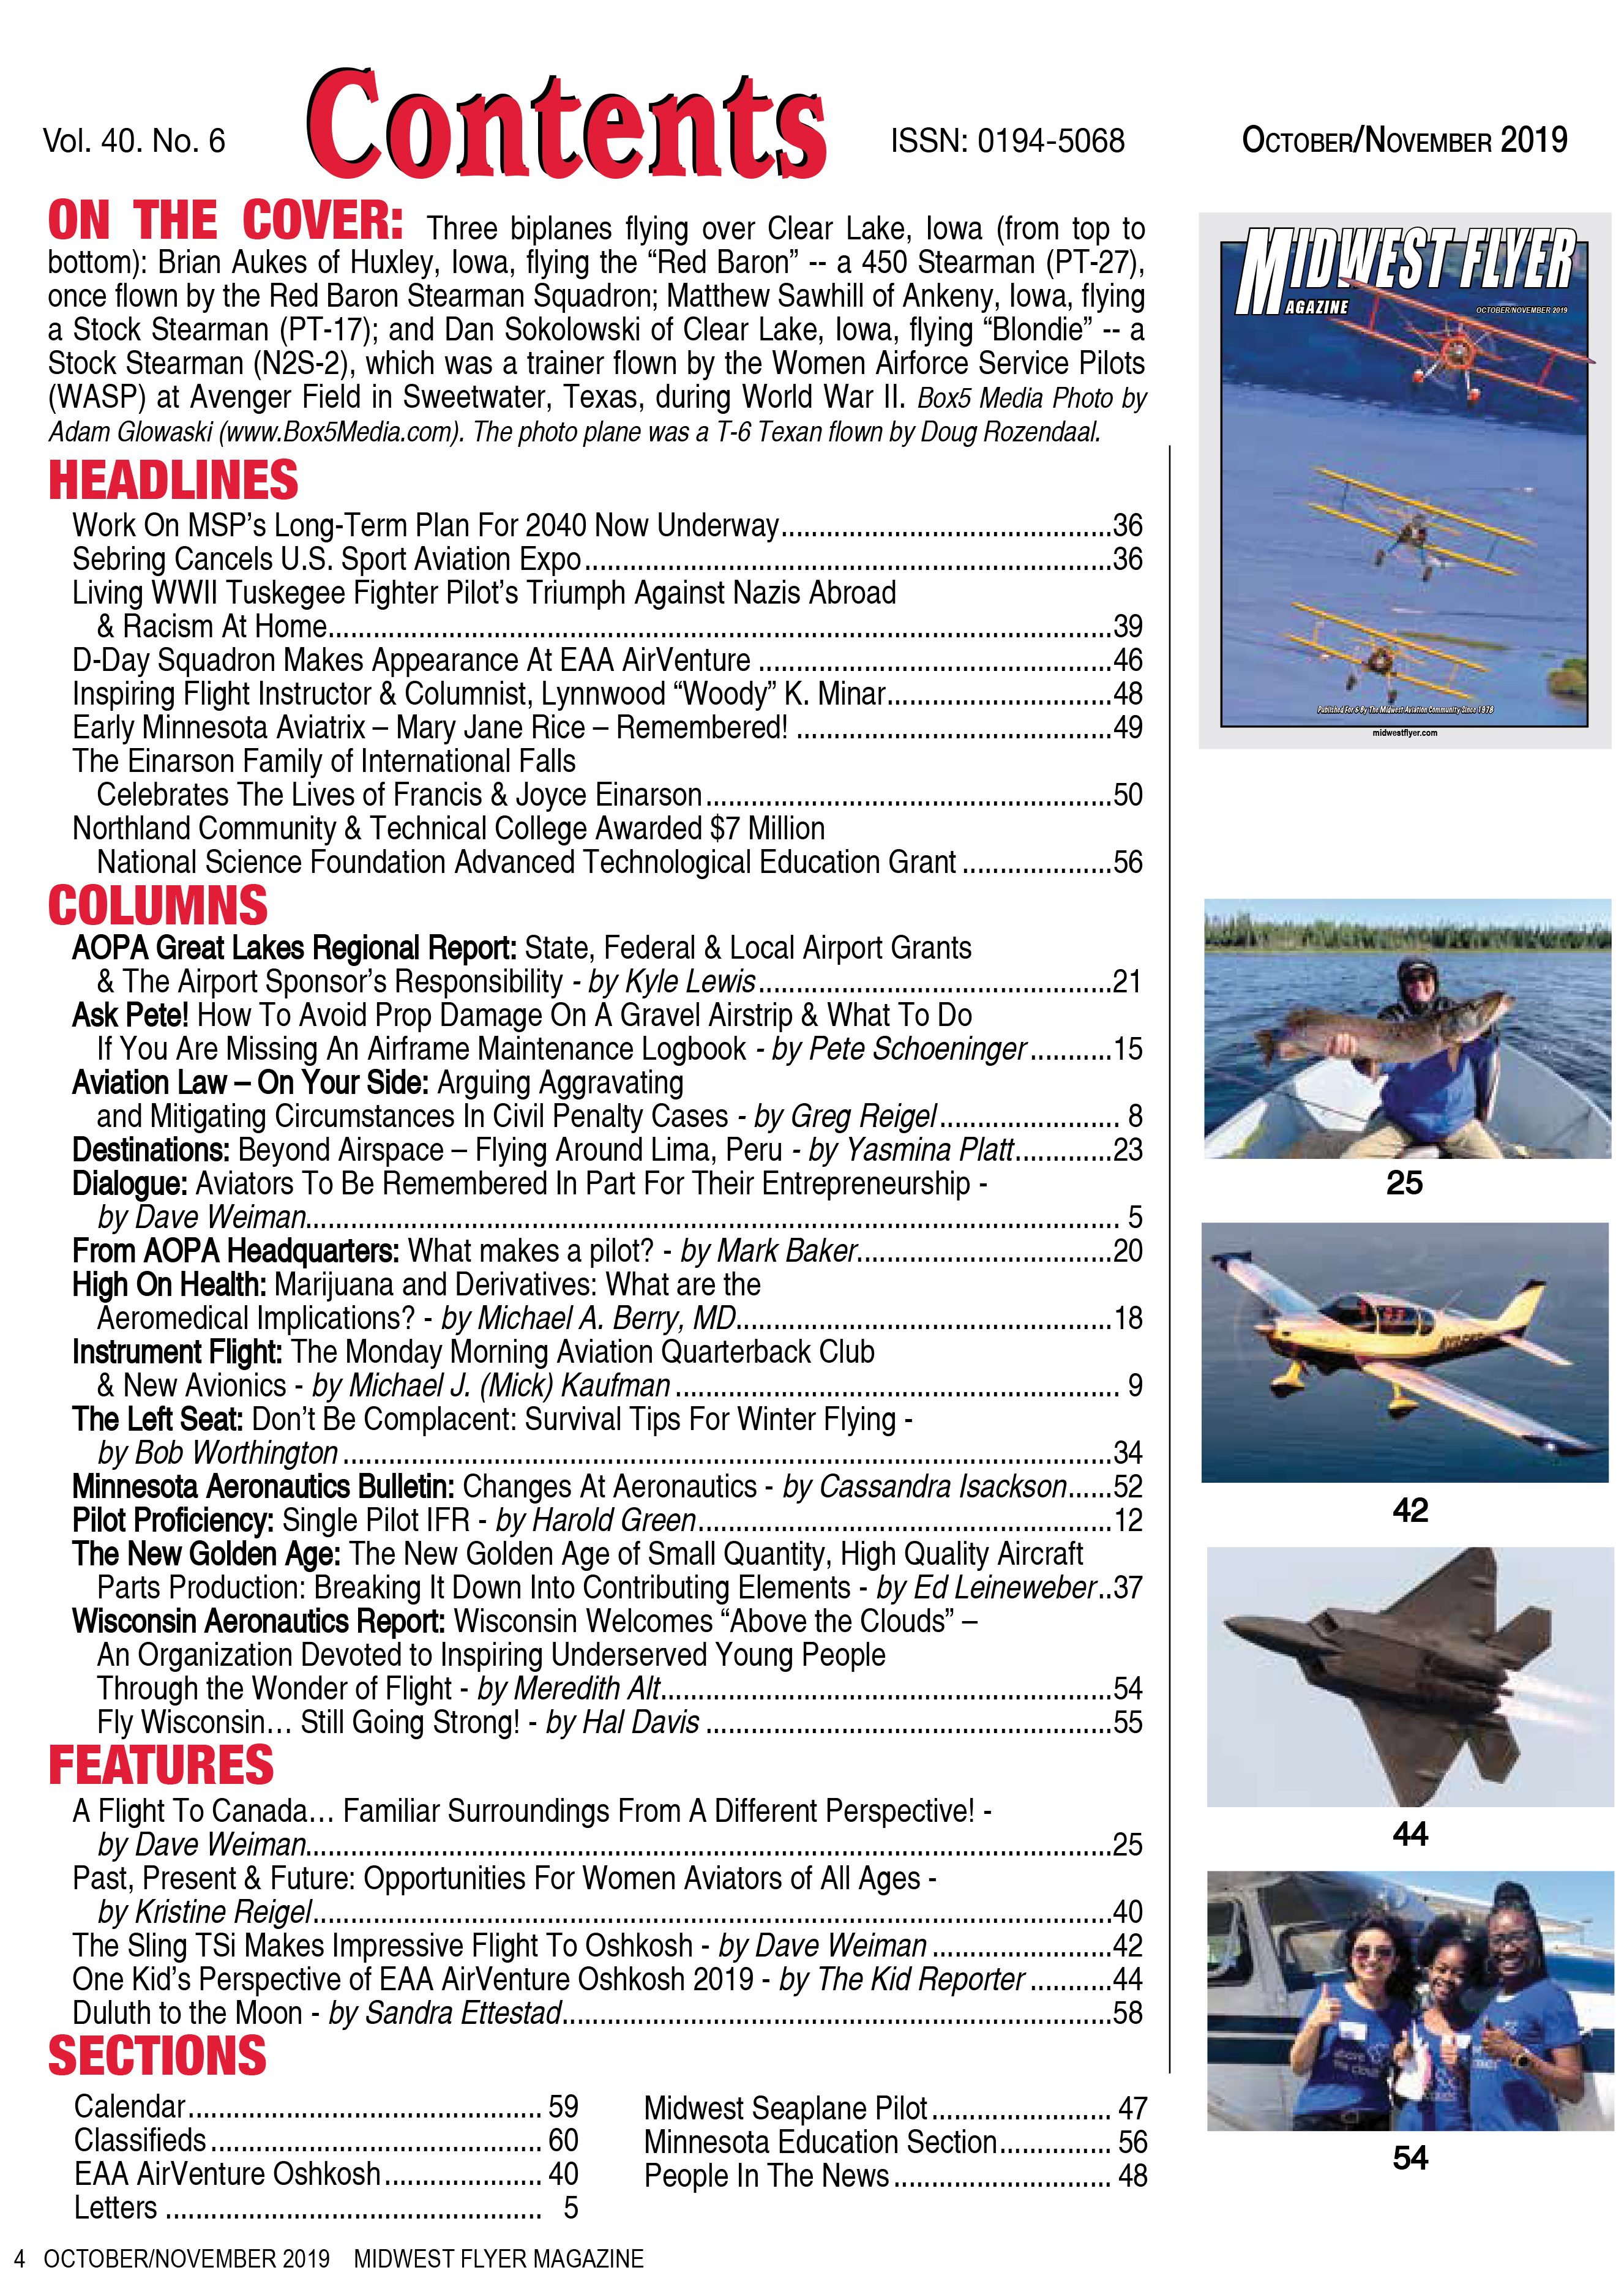 Midwest Flyer Magazine Contents - Oct/Nob